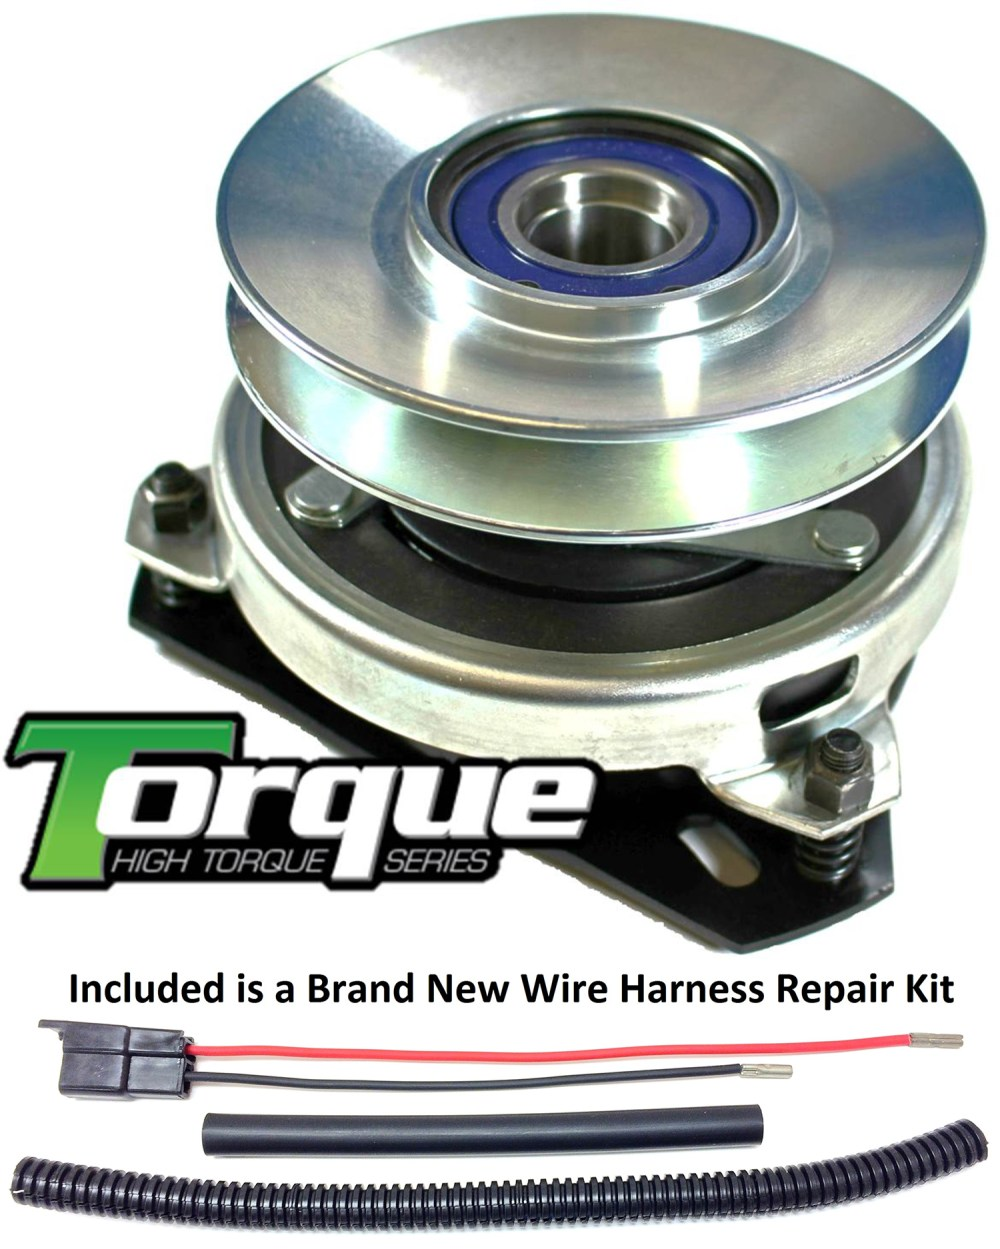 medium resolution of bundle 2 items pto electric blade clutch wire harness repair kit replaces husqvarna 917170056 pto clutch bearing upgrade w wire repair kit